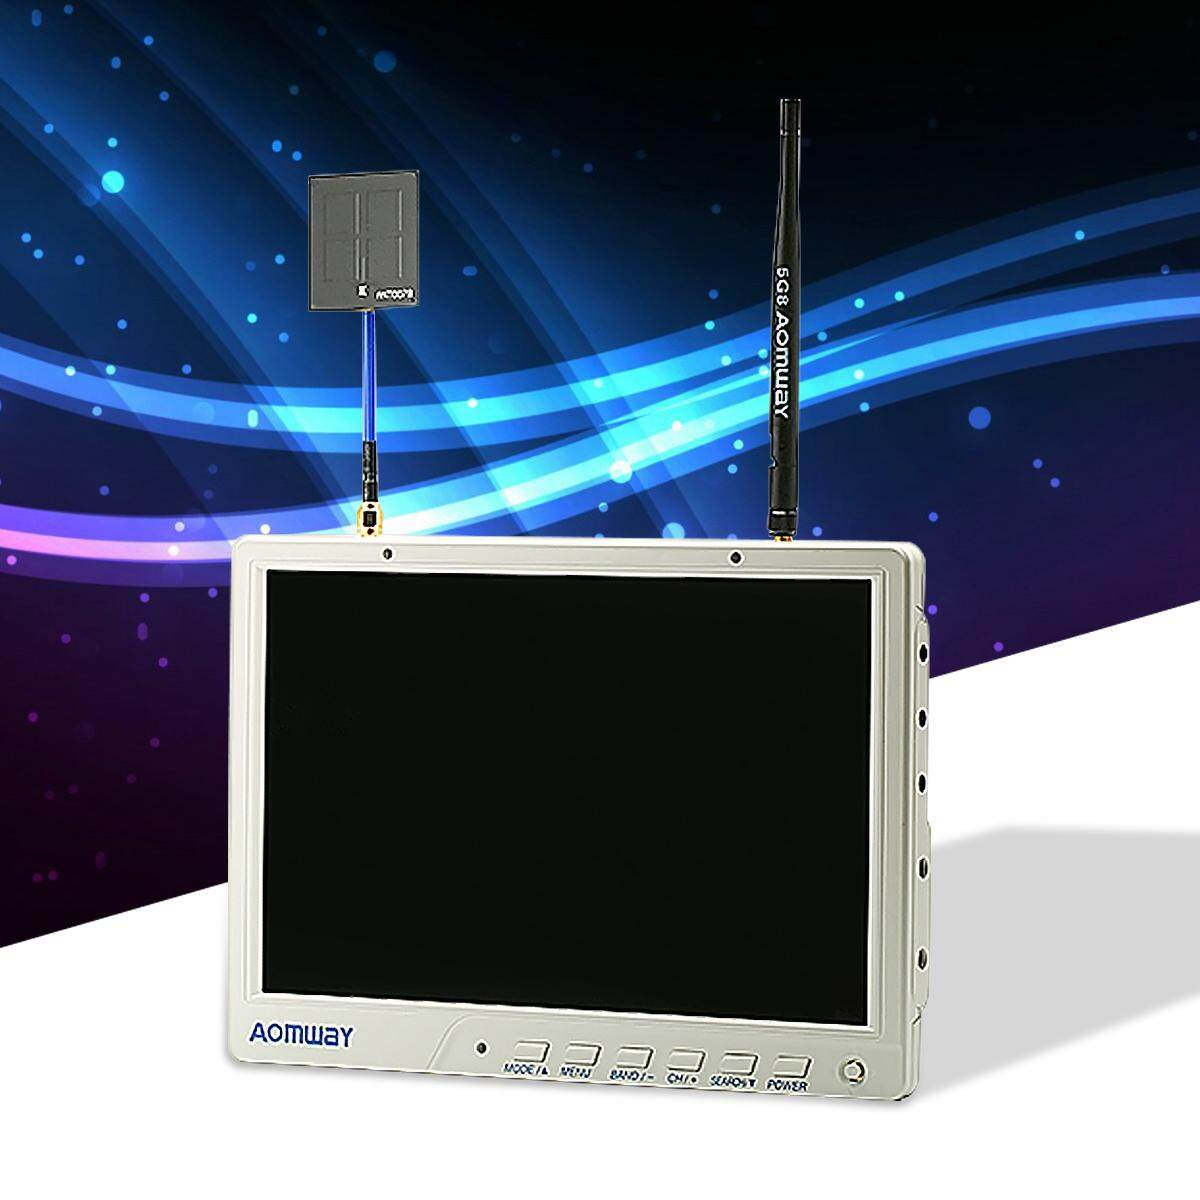 【Free Shipping + Flash Deal】HD588 5.8G 40CH 10 Inch Diversity FPV HD Monitor 1920 x1200 With DVR For Aomway Malaysia